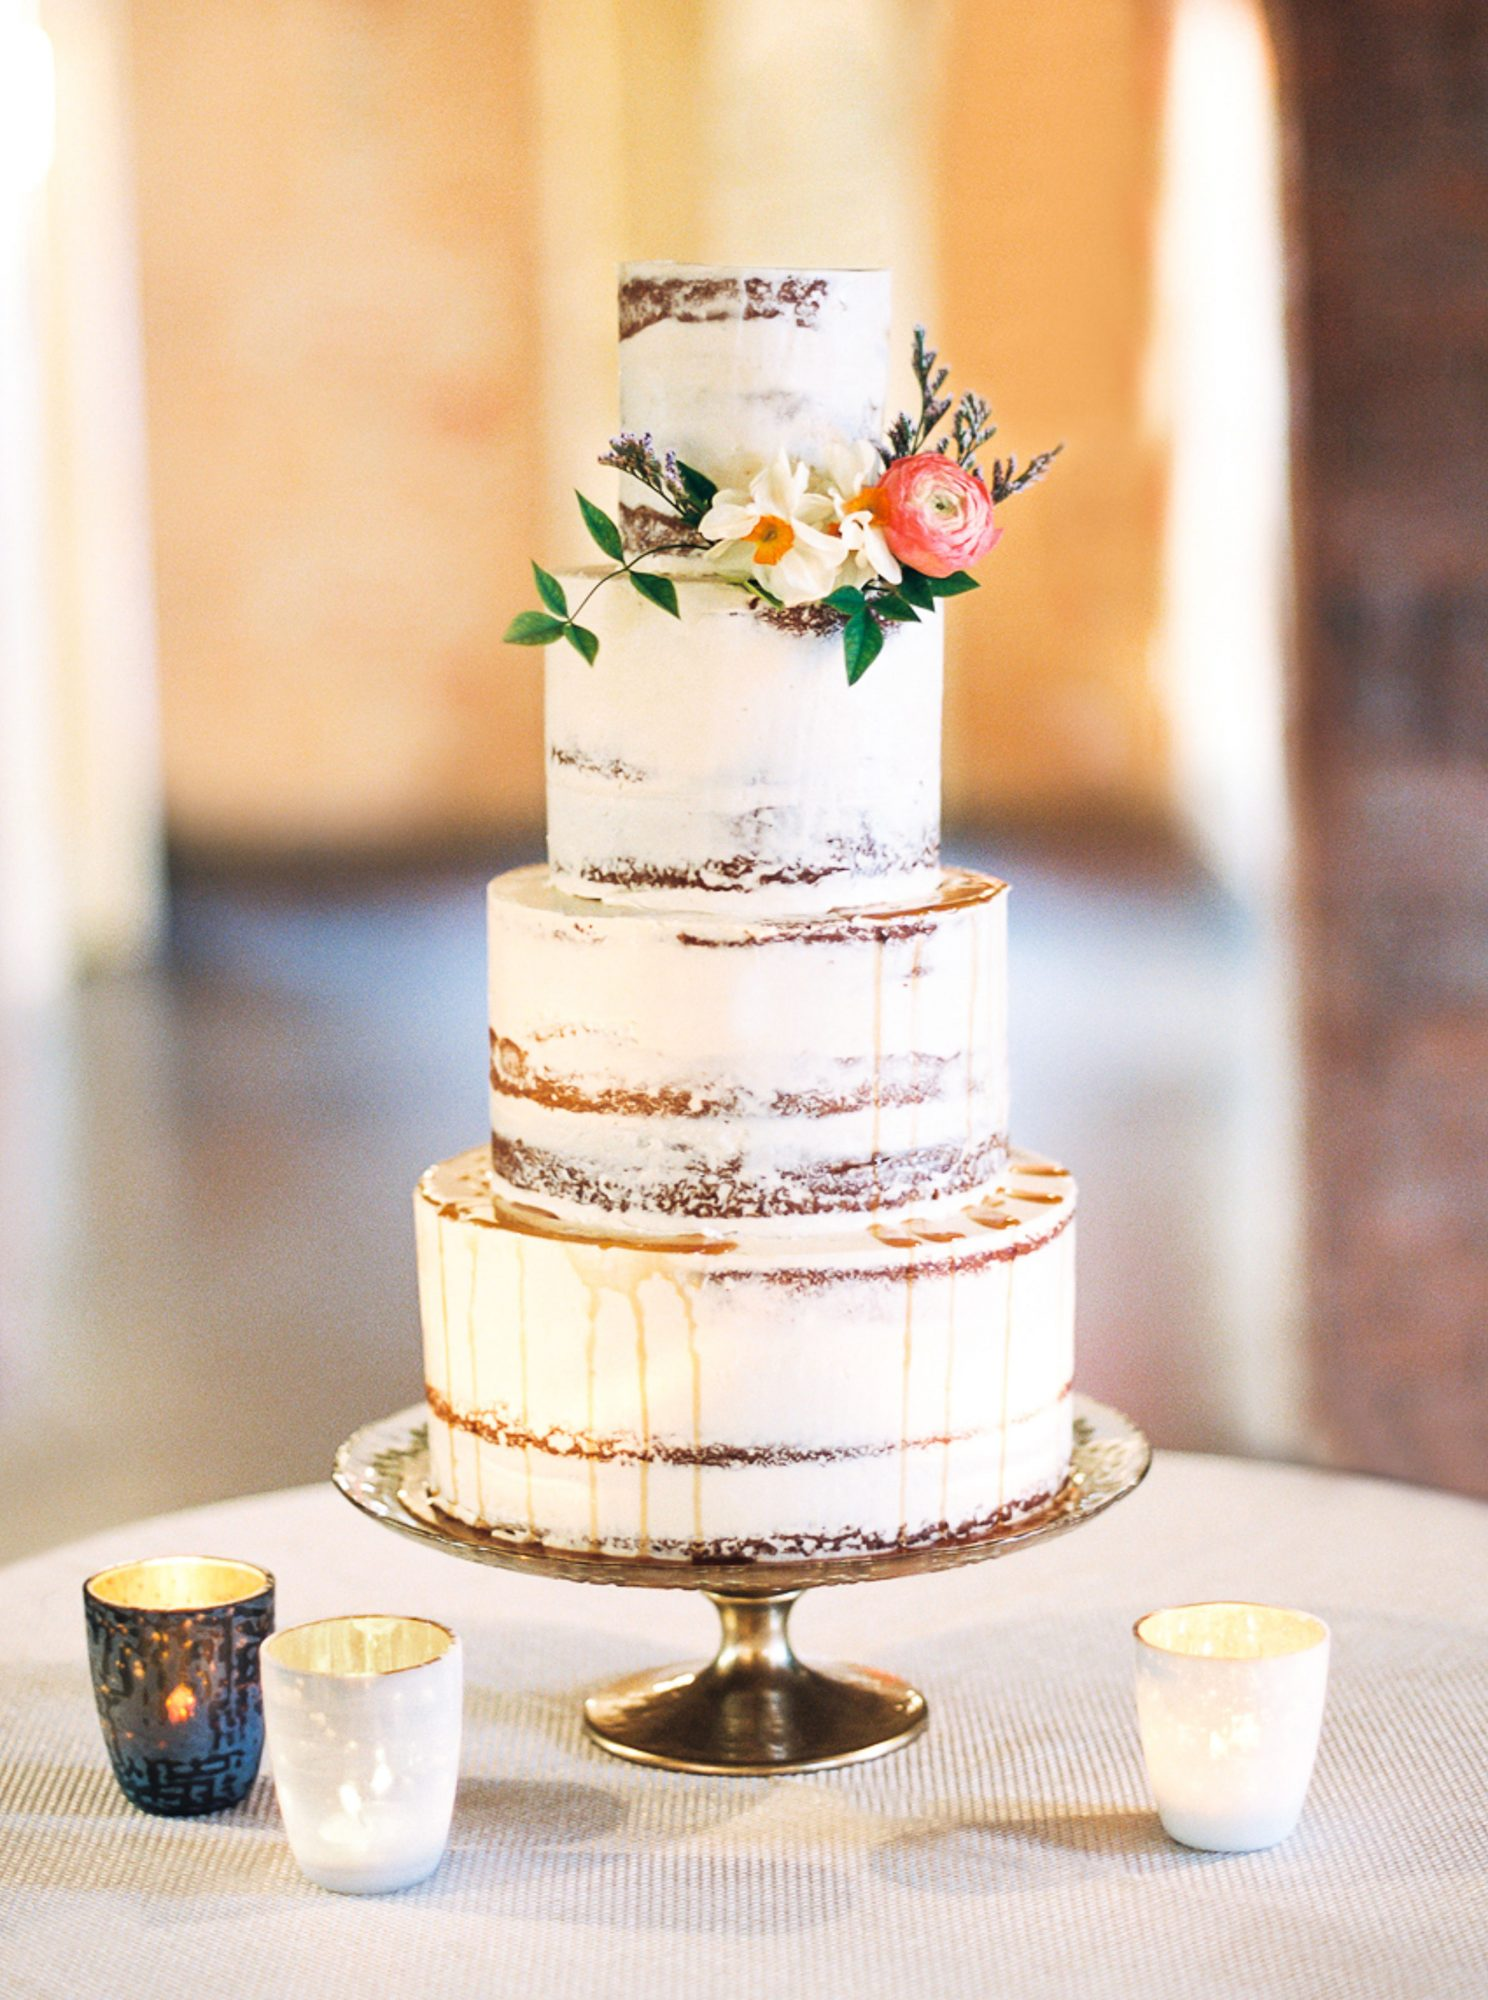 The groom admitted that he thought about this semi-naked Layered banana cake (complete with chocolate-ganache filling) long after his wedding day.